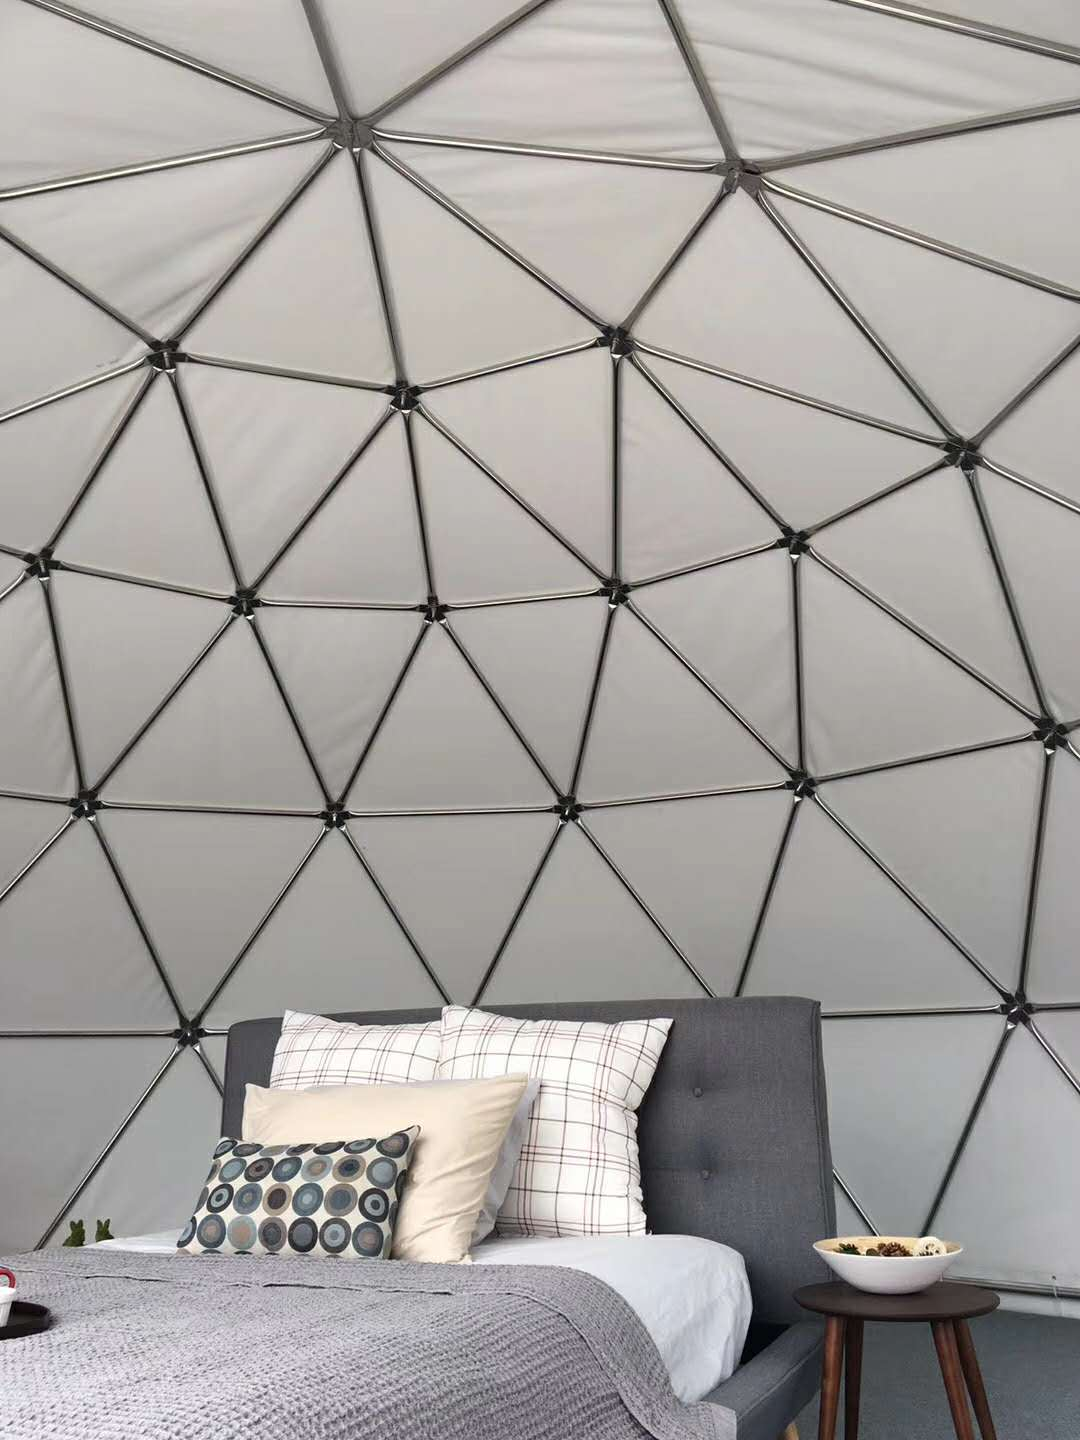 8 Meter Geodesic Dome